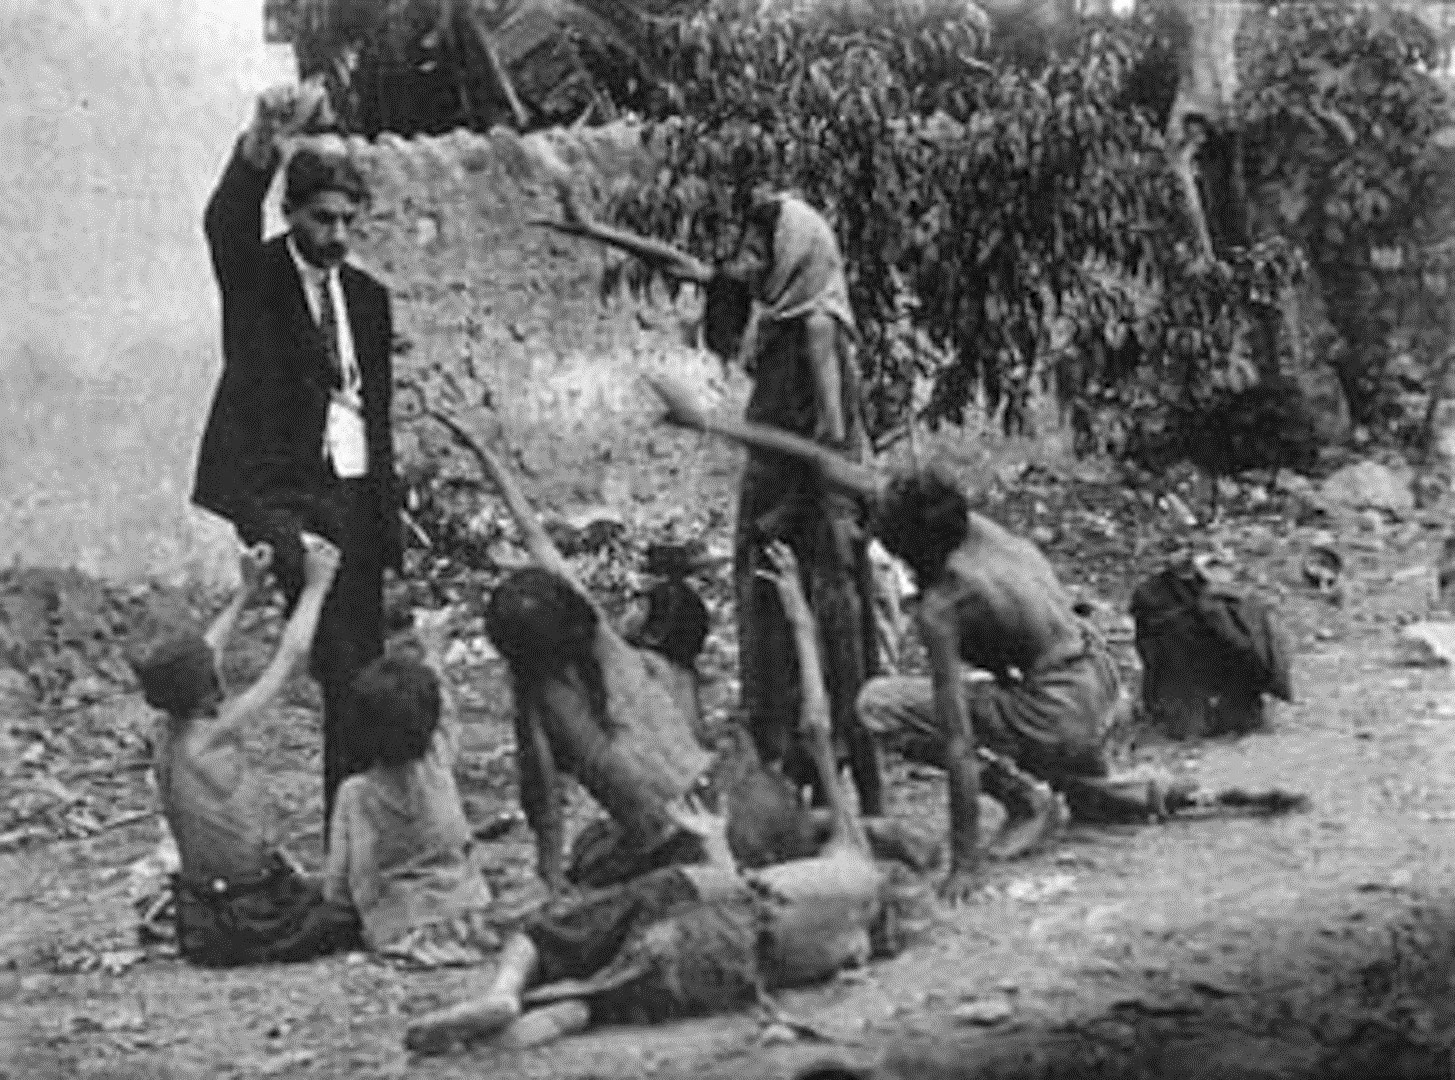 Turk official teasing Armenian starved children by showing bread 1915 Collection of St. Lazar Mkhitarian Congregation - The Recognition of the genocides as the beginning of justice against the crimes against humanity